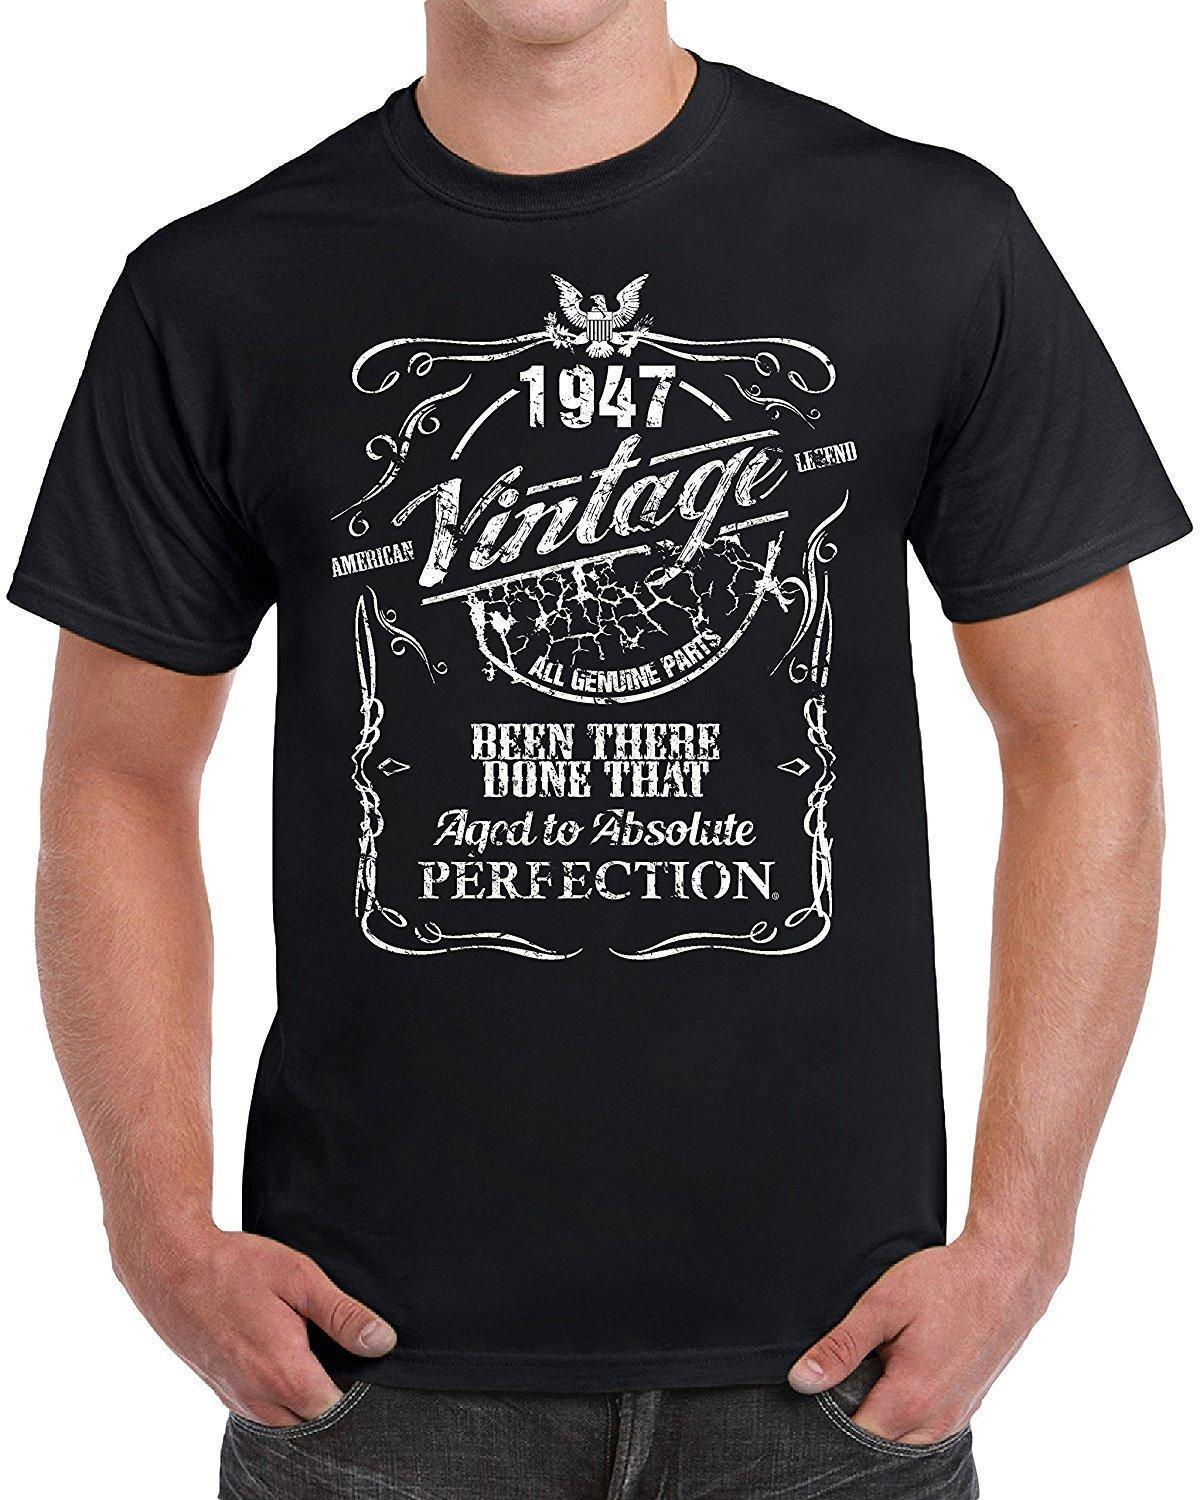 70th Birthday Gifts For Mom Dad Couples Wedding Anniversary 1947 T Shirt Retro 100 Cotton Print Tee Top Plus Size Original Shirts